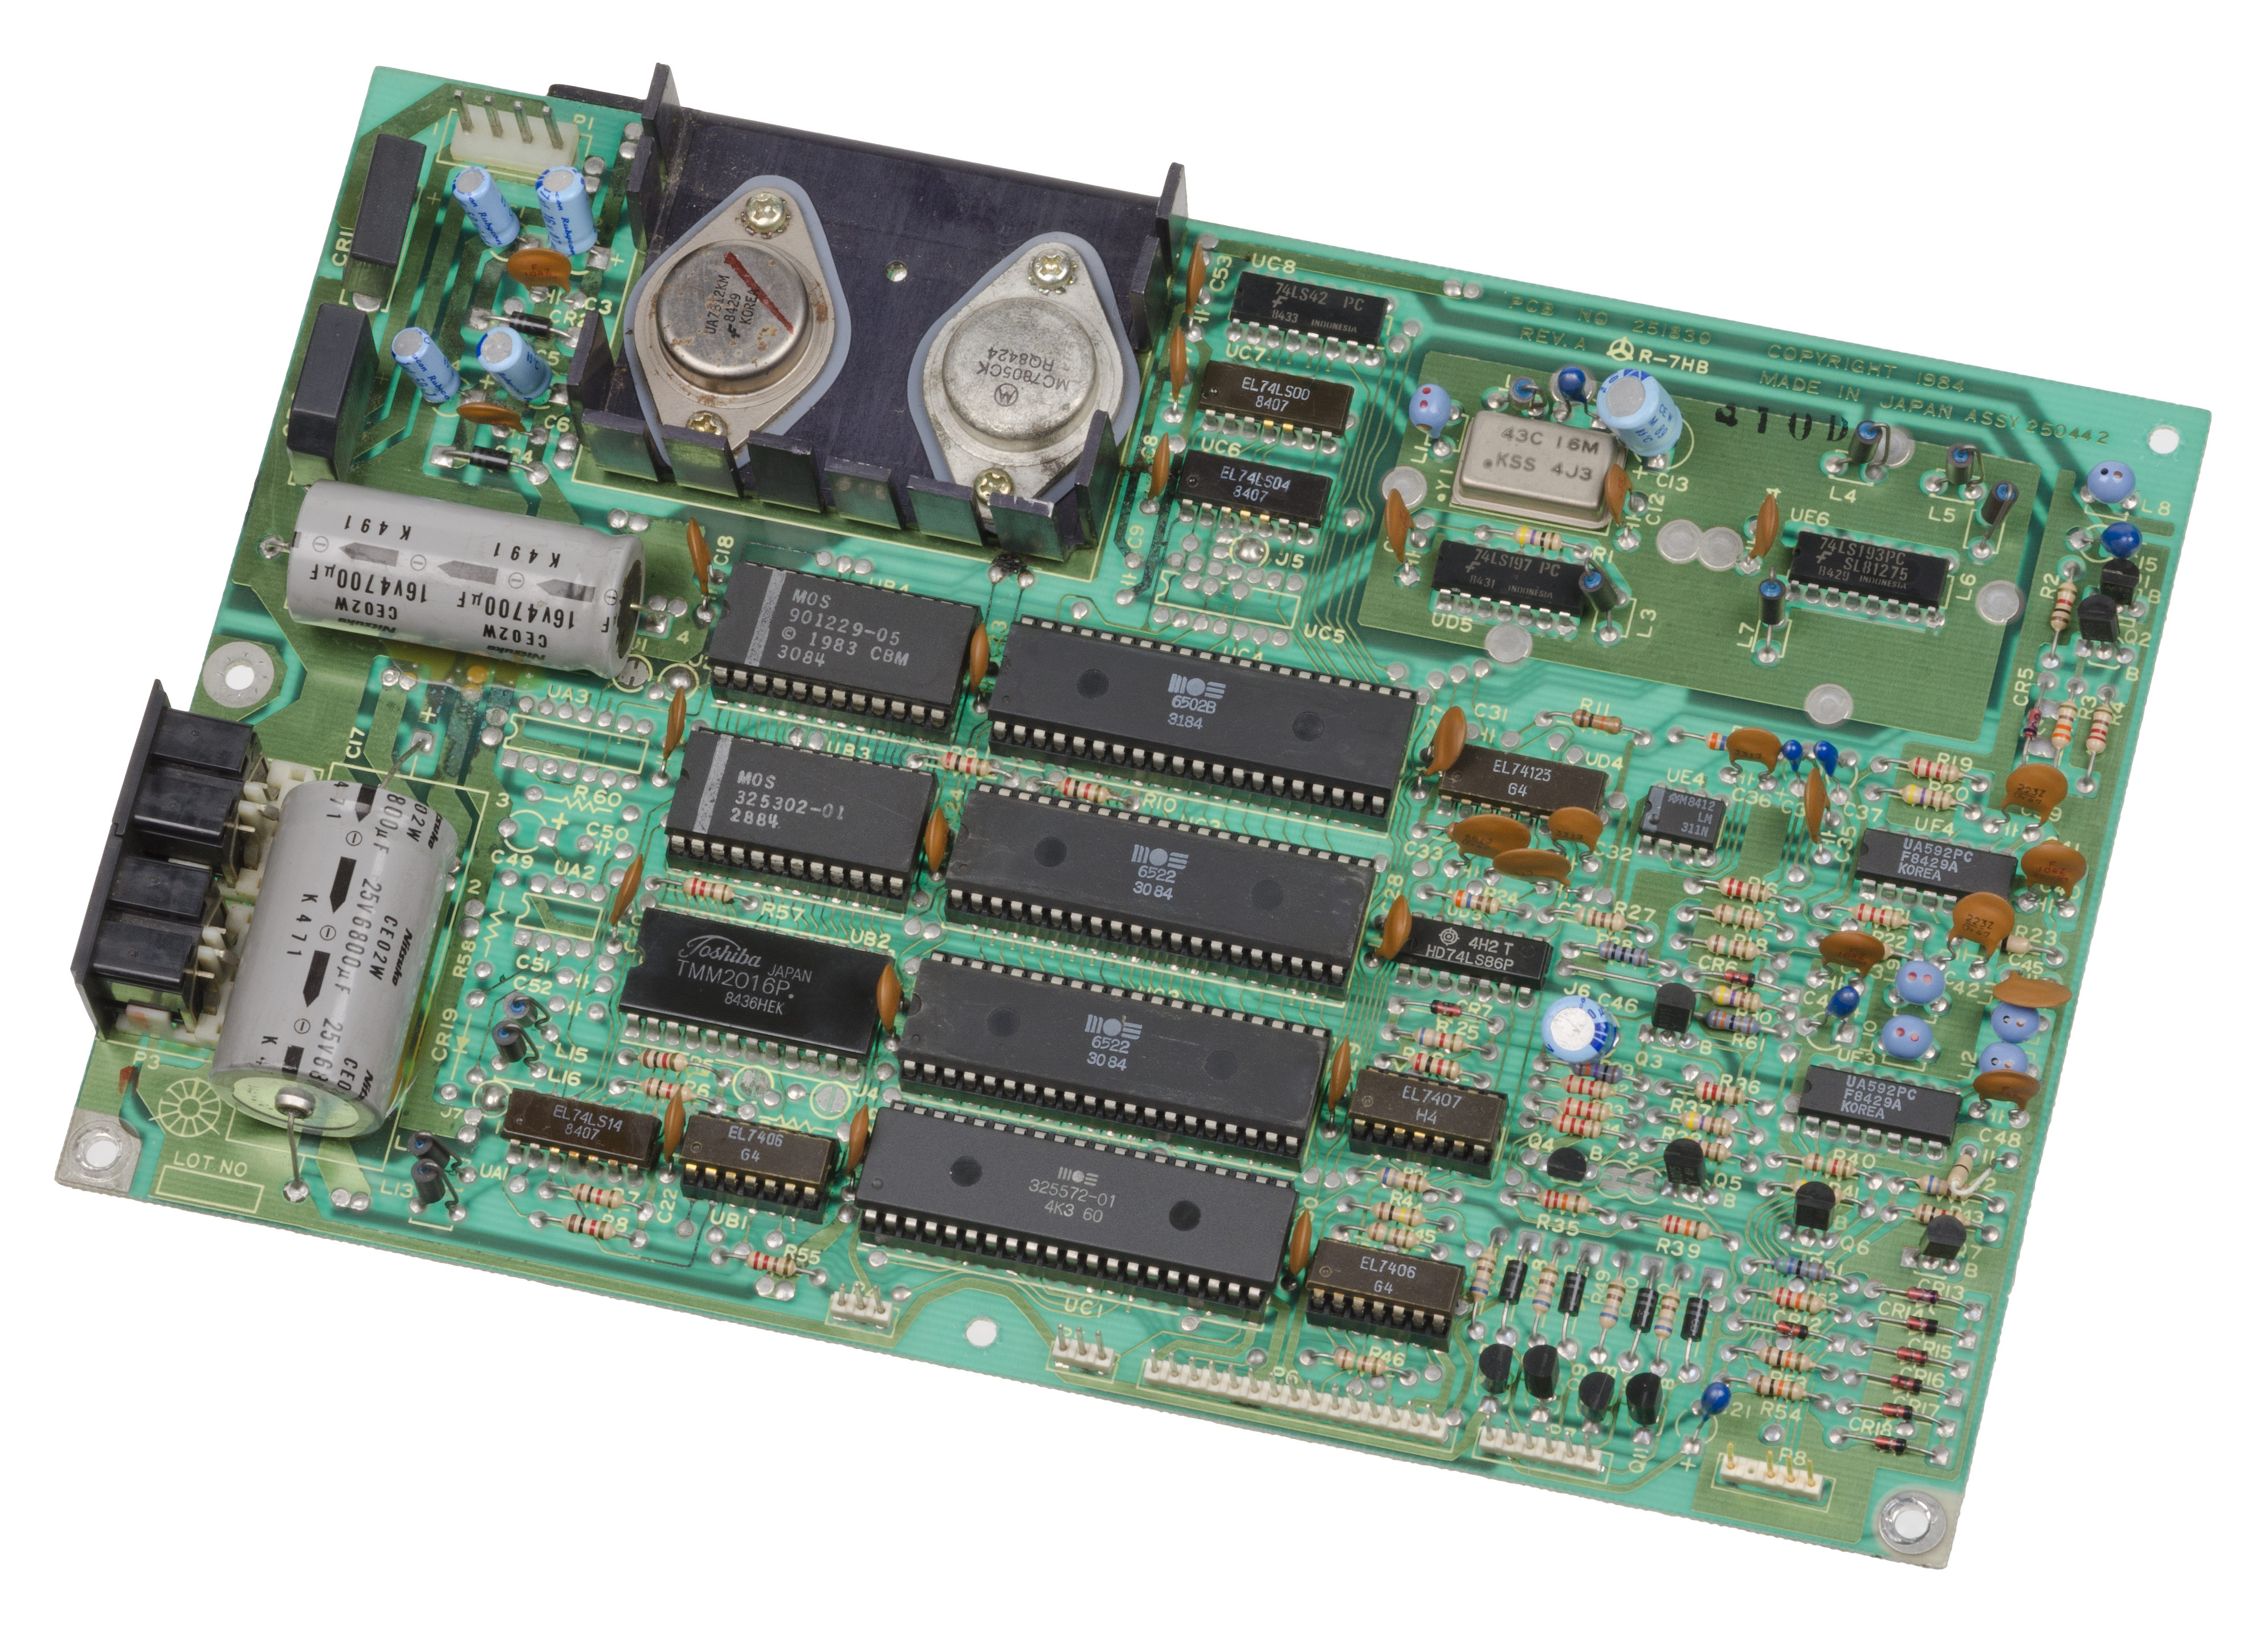 File:Commodore-64-1541-Floppy-Drive-Motherboard-01.